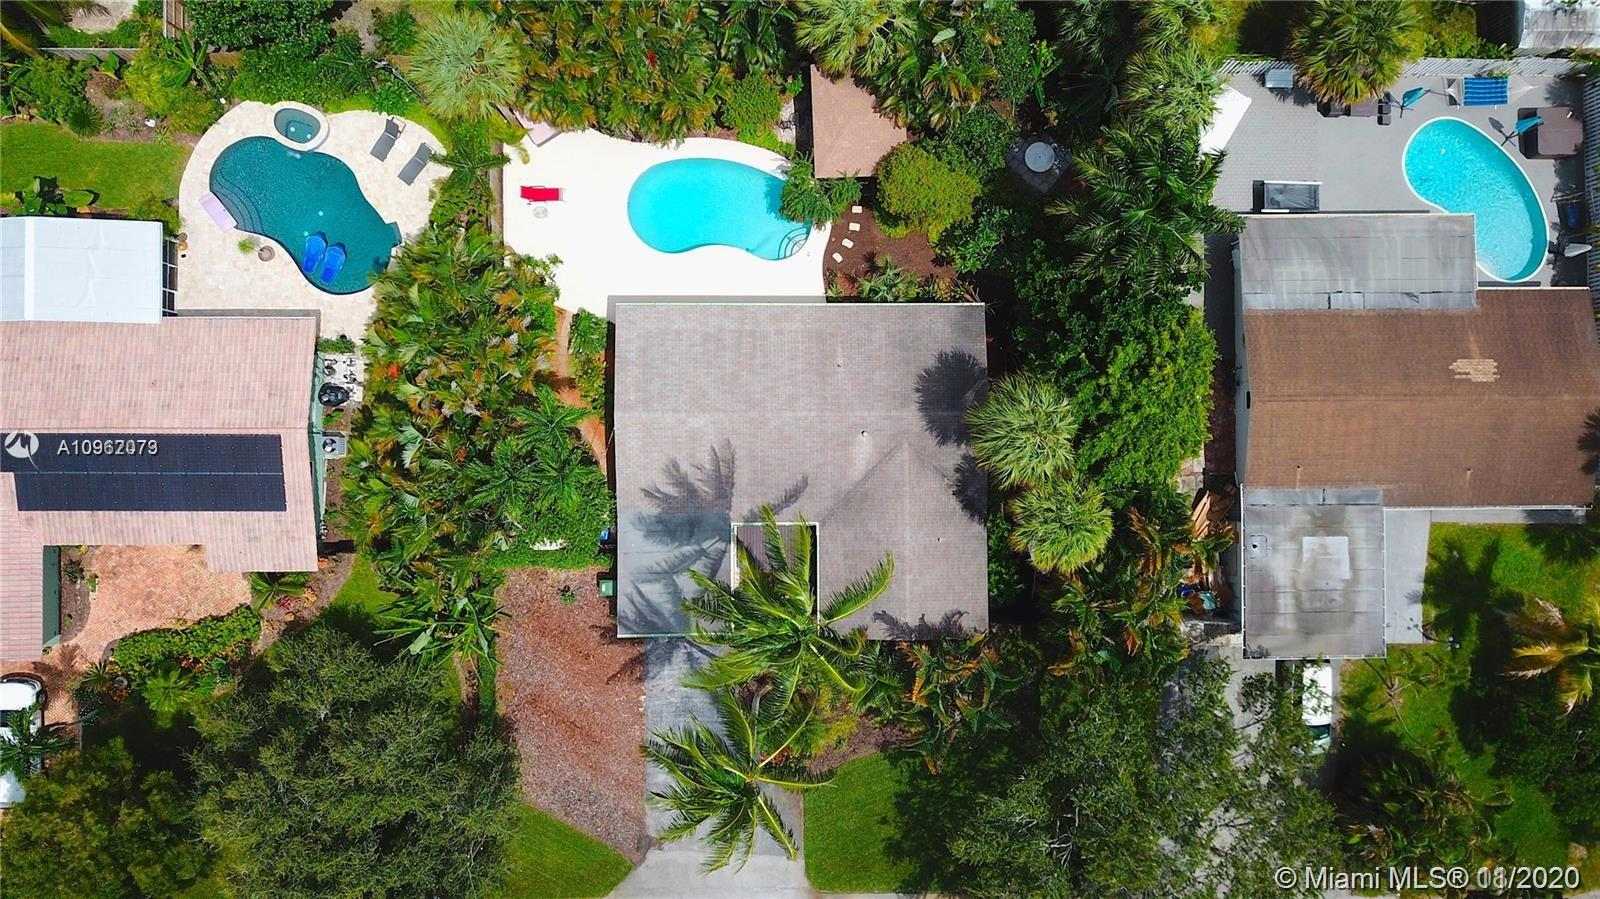 Stunning 3/2 single family home with pool sitting on a 11, 000 sq foot lot! Ample room for parking boats, Rv or whatever other toys you may have. Situated close to downtown Fort Lauderdale and Las Olas on a quiet dead end street. Home has an open concept with carport and separate laundry room. Roof, AC, electrical all in great shape and relatively new. Home boasts a recently upgraded pool, Outdoor shower Cabana with power/tv, hot tub, tiki bar, Mature landscape/garden and 150 sqft metal storage building with power. ! Boat ramps and parks all within walking distance. This property will not last long so please inquire today! Make sure to check out virtual tour of this property ! 